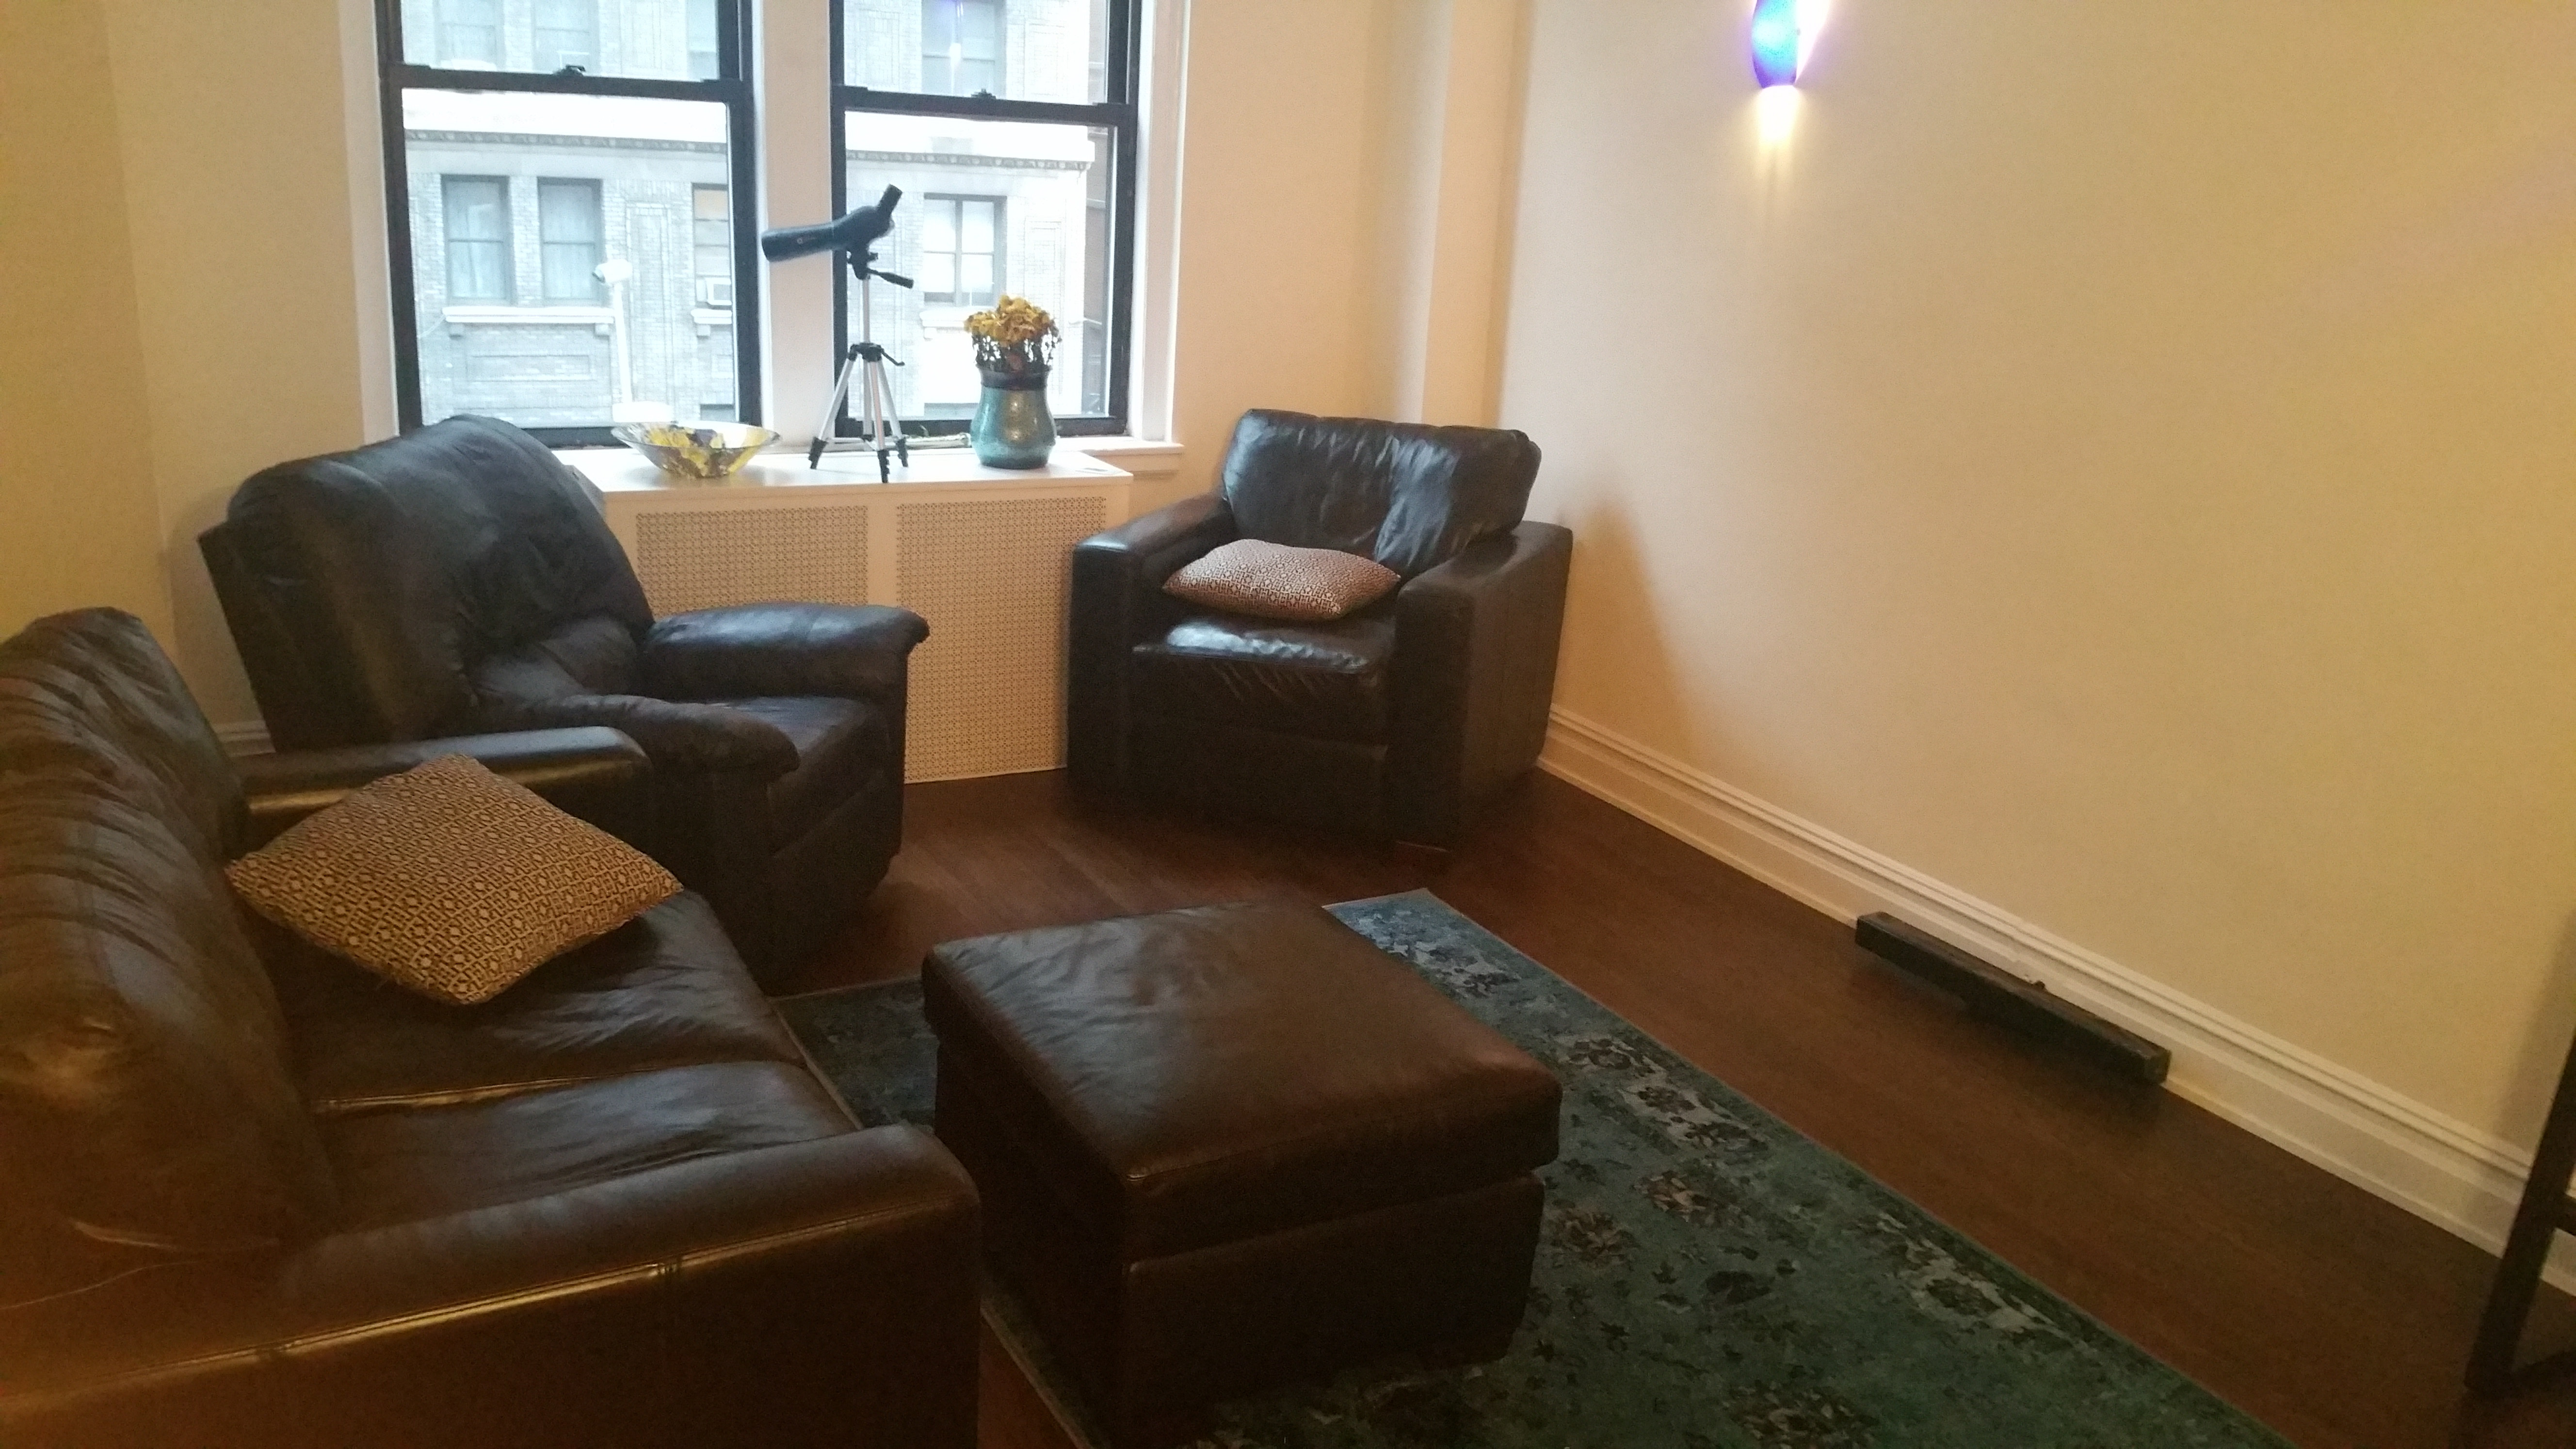 AVAILABLE APARTMENTS NYC UPPER WEST SIDE Nov 13 26 Or Part Of ENTIRE APARTMENT 1 BEDROOM LIVING ROOM DINING Entire Apartment Bedroom Upper West Side Bang It